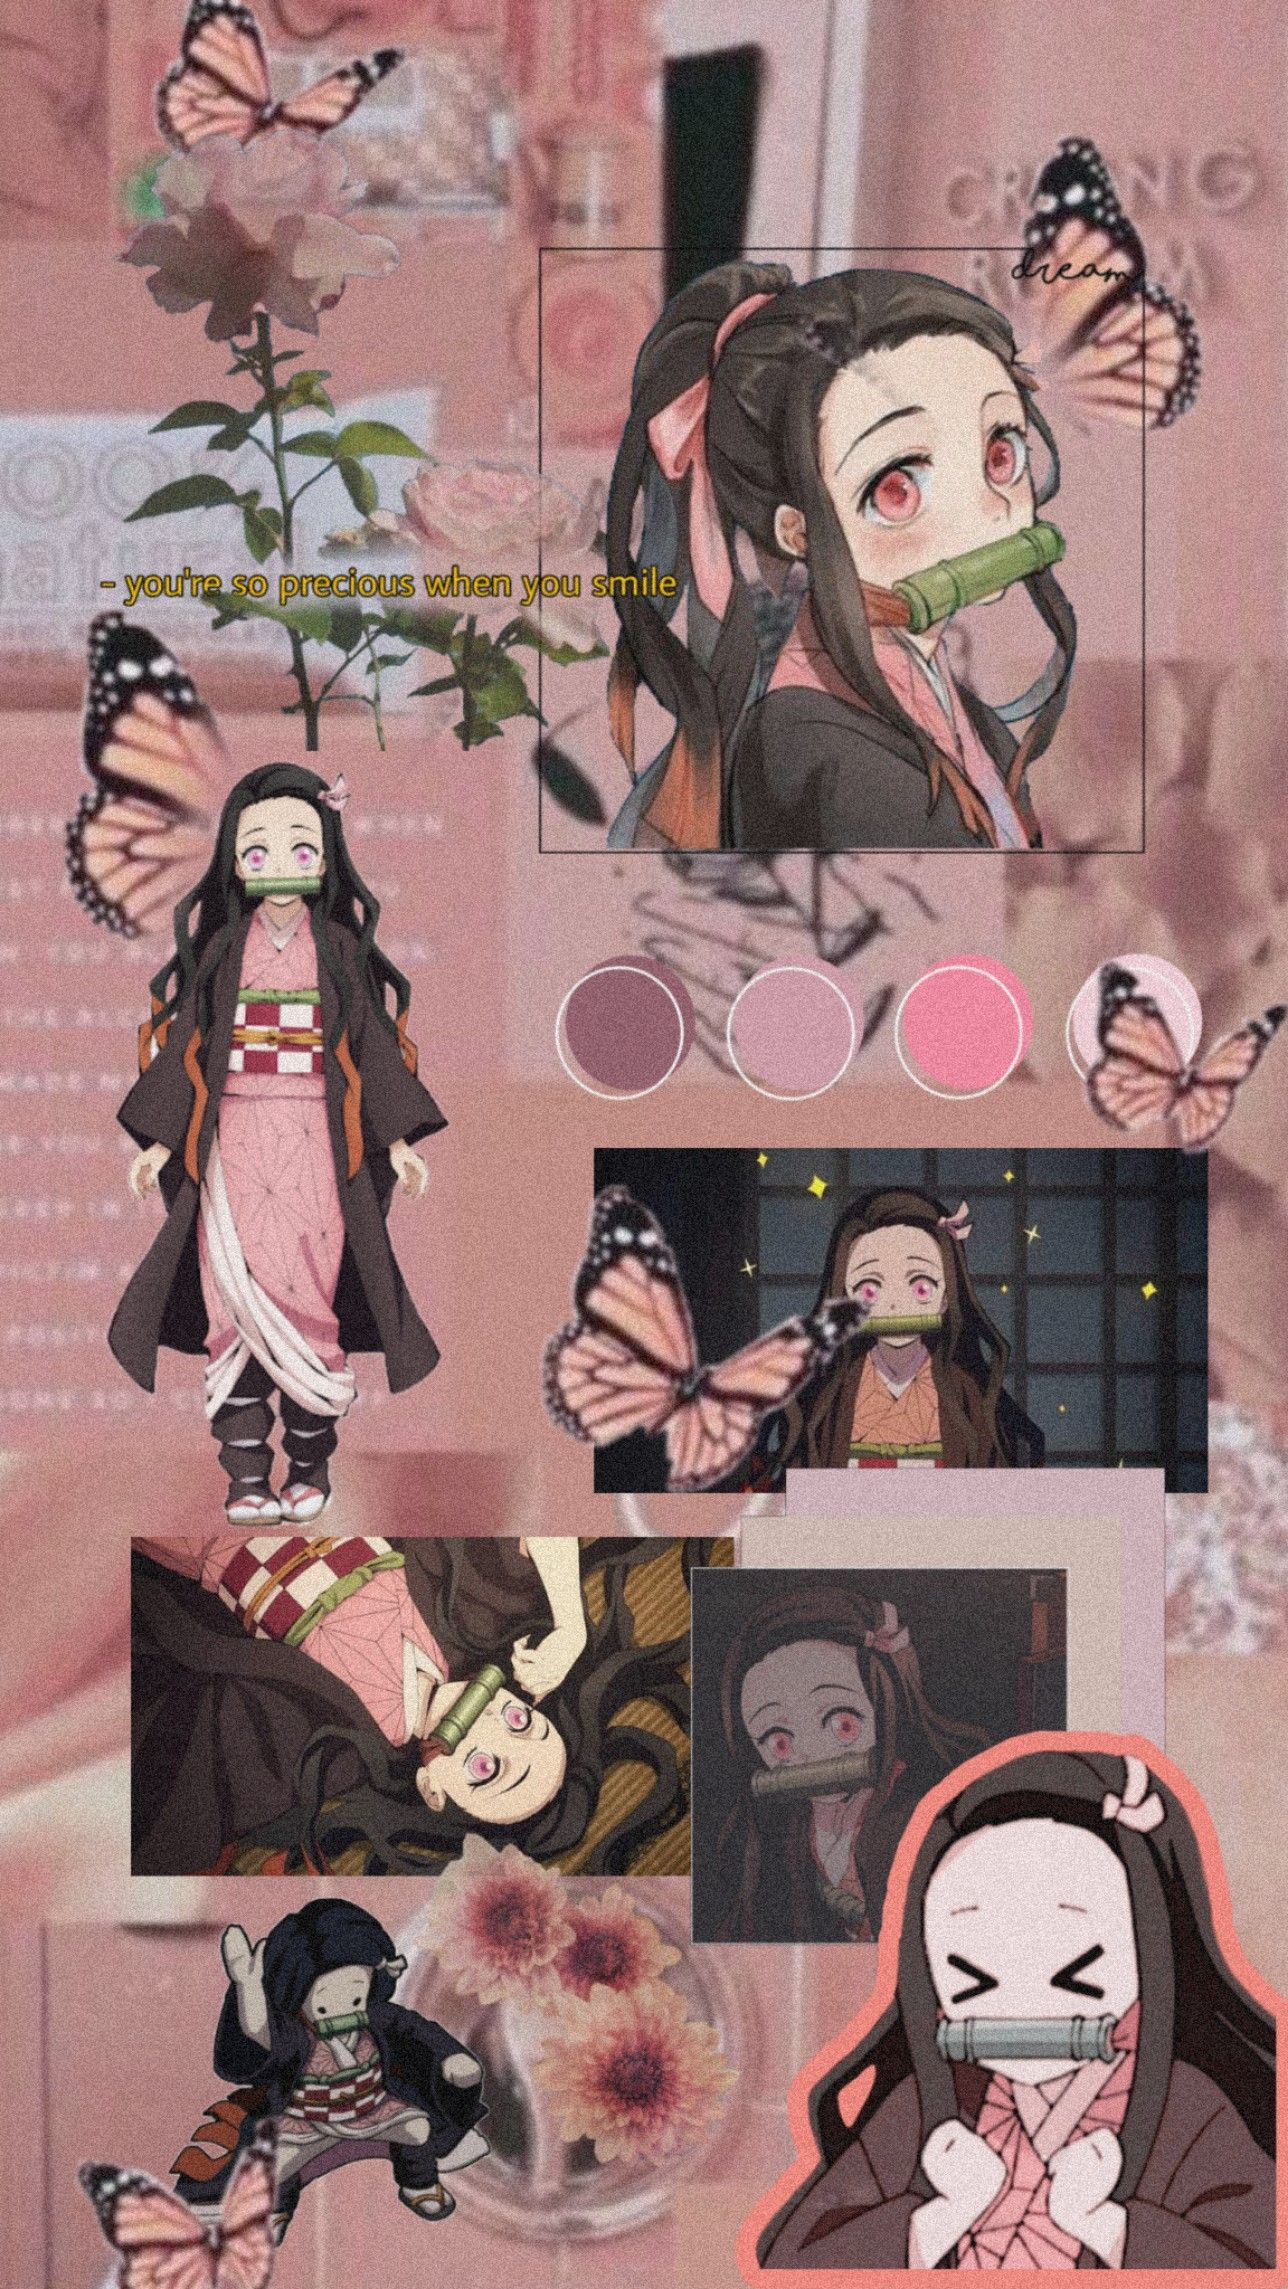 Nezuko Demon Slayer Kimetsu No Yaiba Anime Wallpaper Phone Pink Wallpaper Anime Anime Wallpaper Live